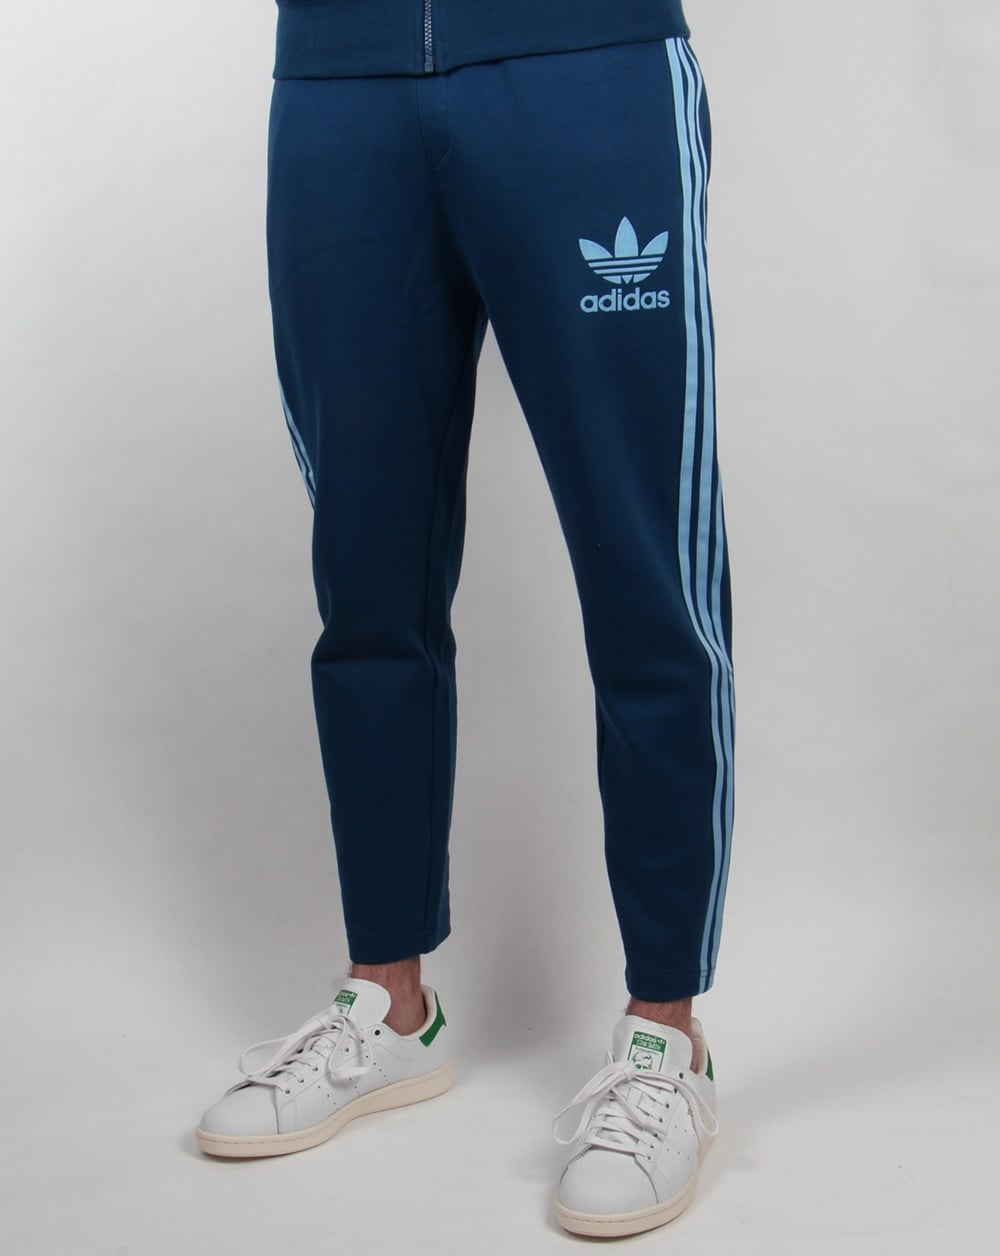 adidas originals 7 8 length track pants blue clear blue. Black Bedroom Furniture Sets. Home Design Ideas